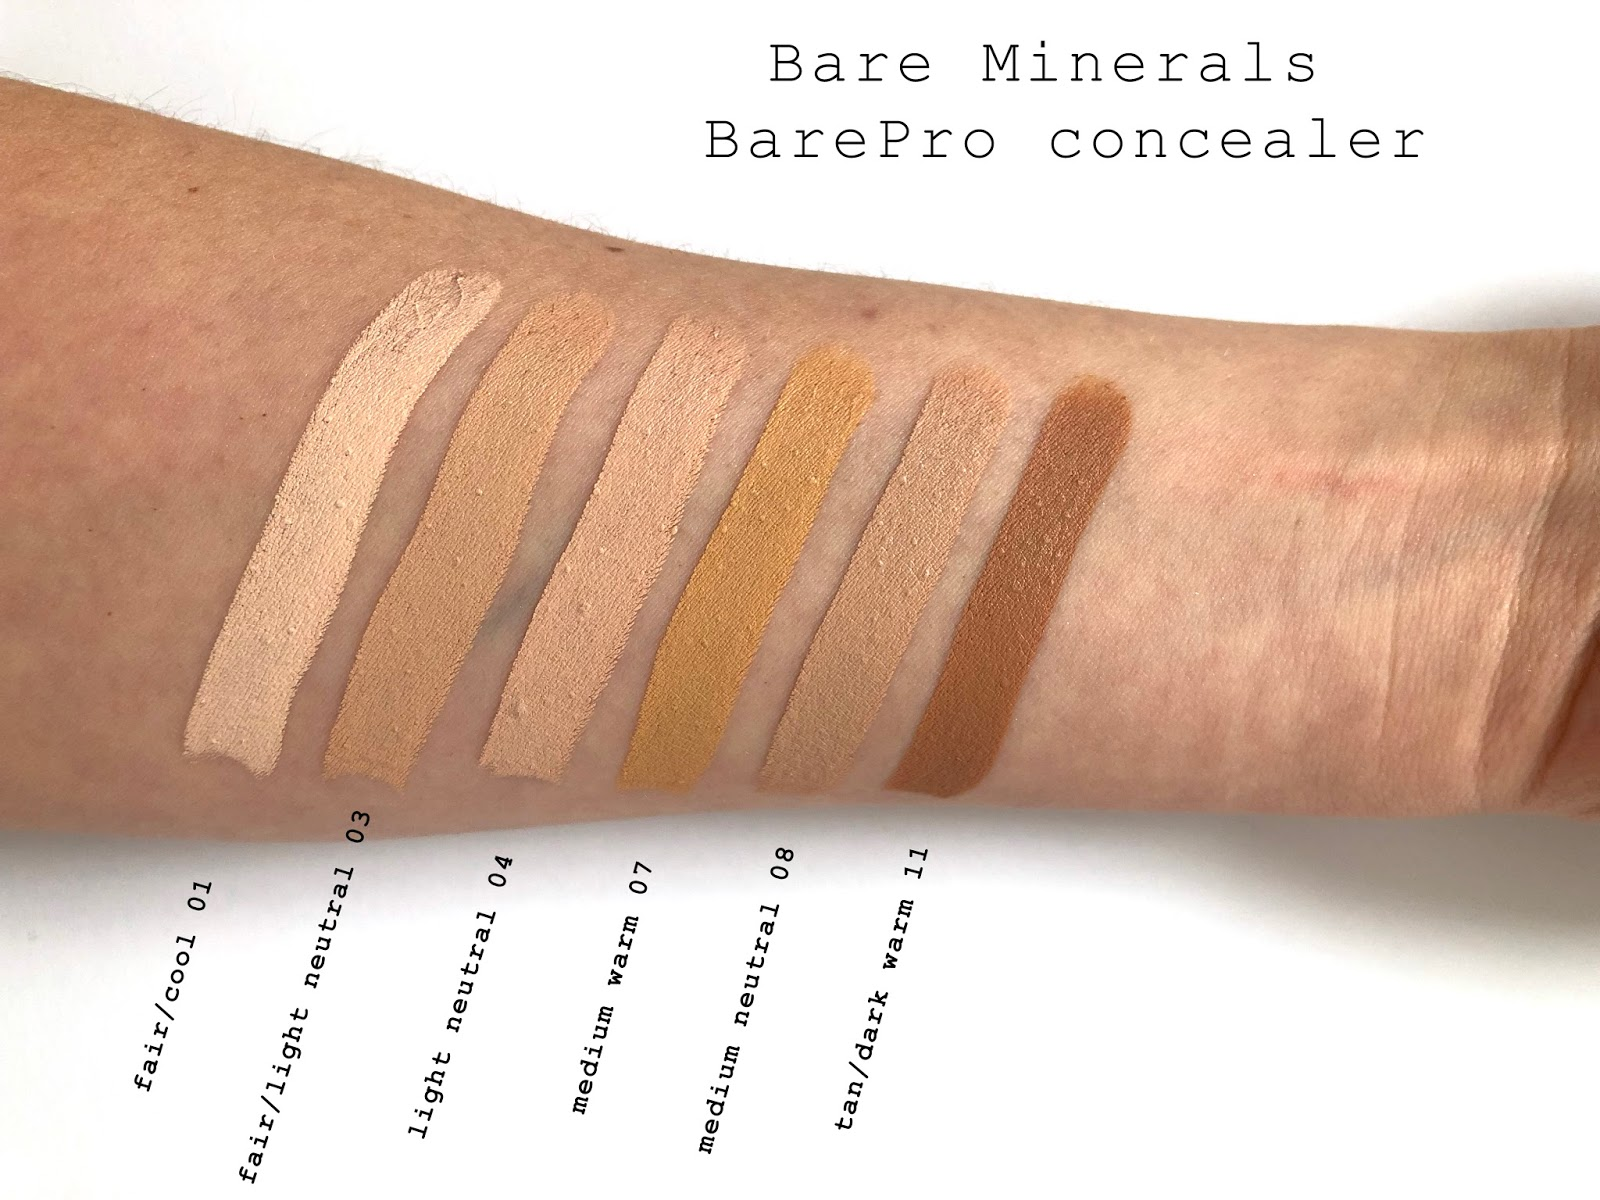 BarePro 16-Hour Full Coverage Concealer by bareMinerals #10